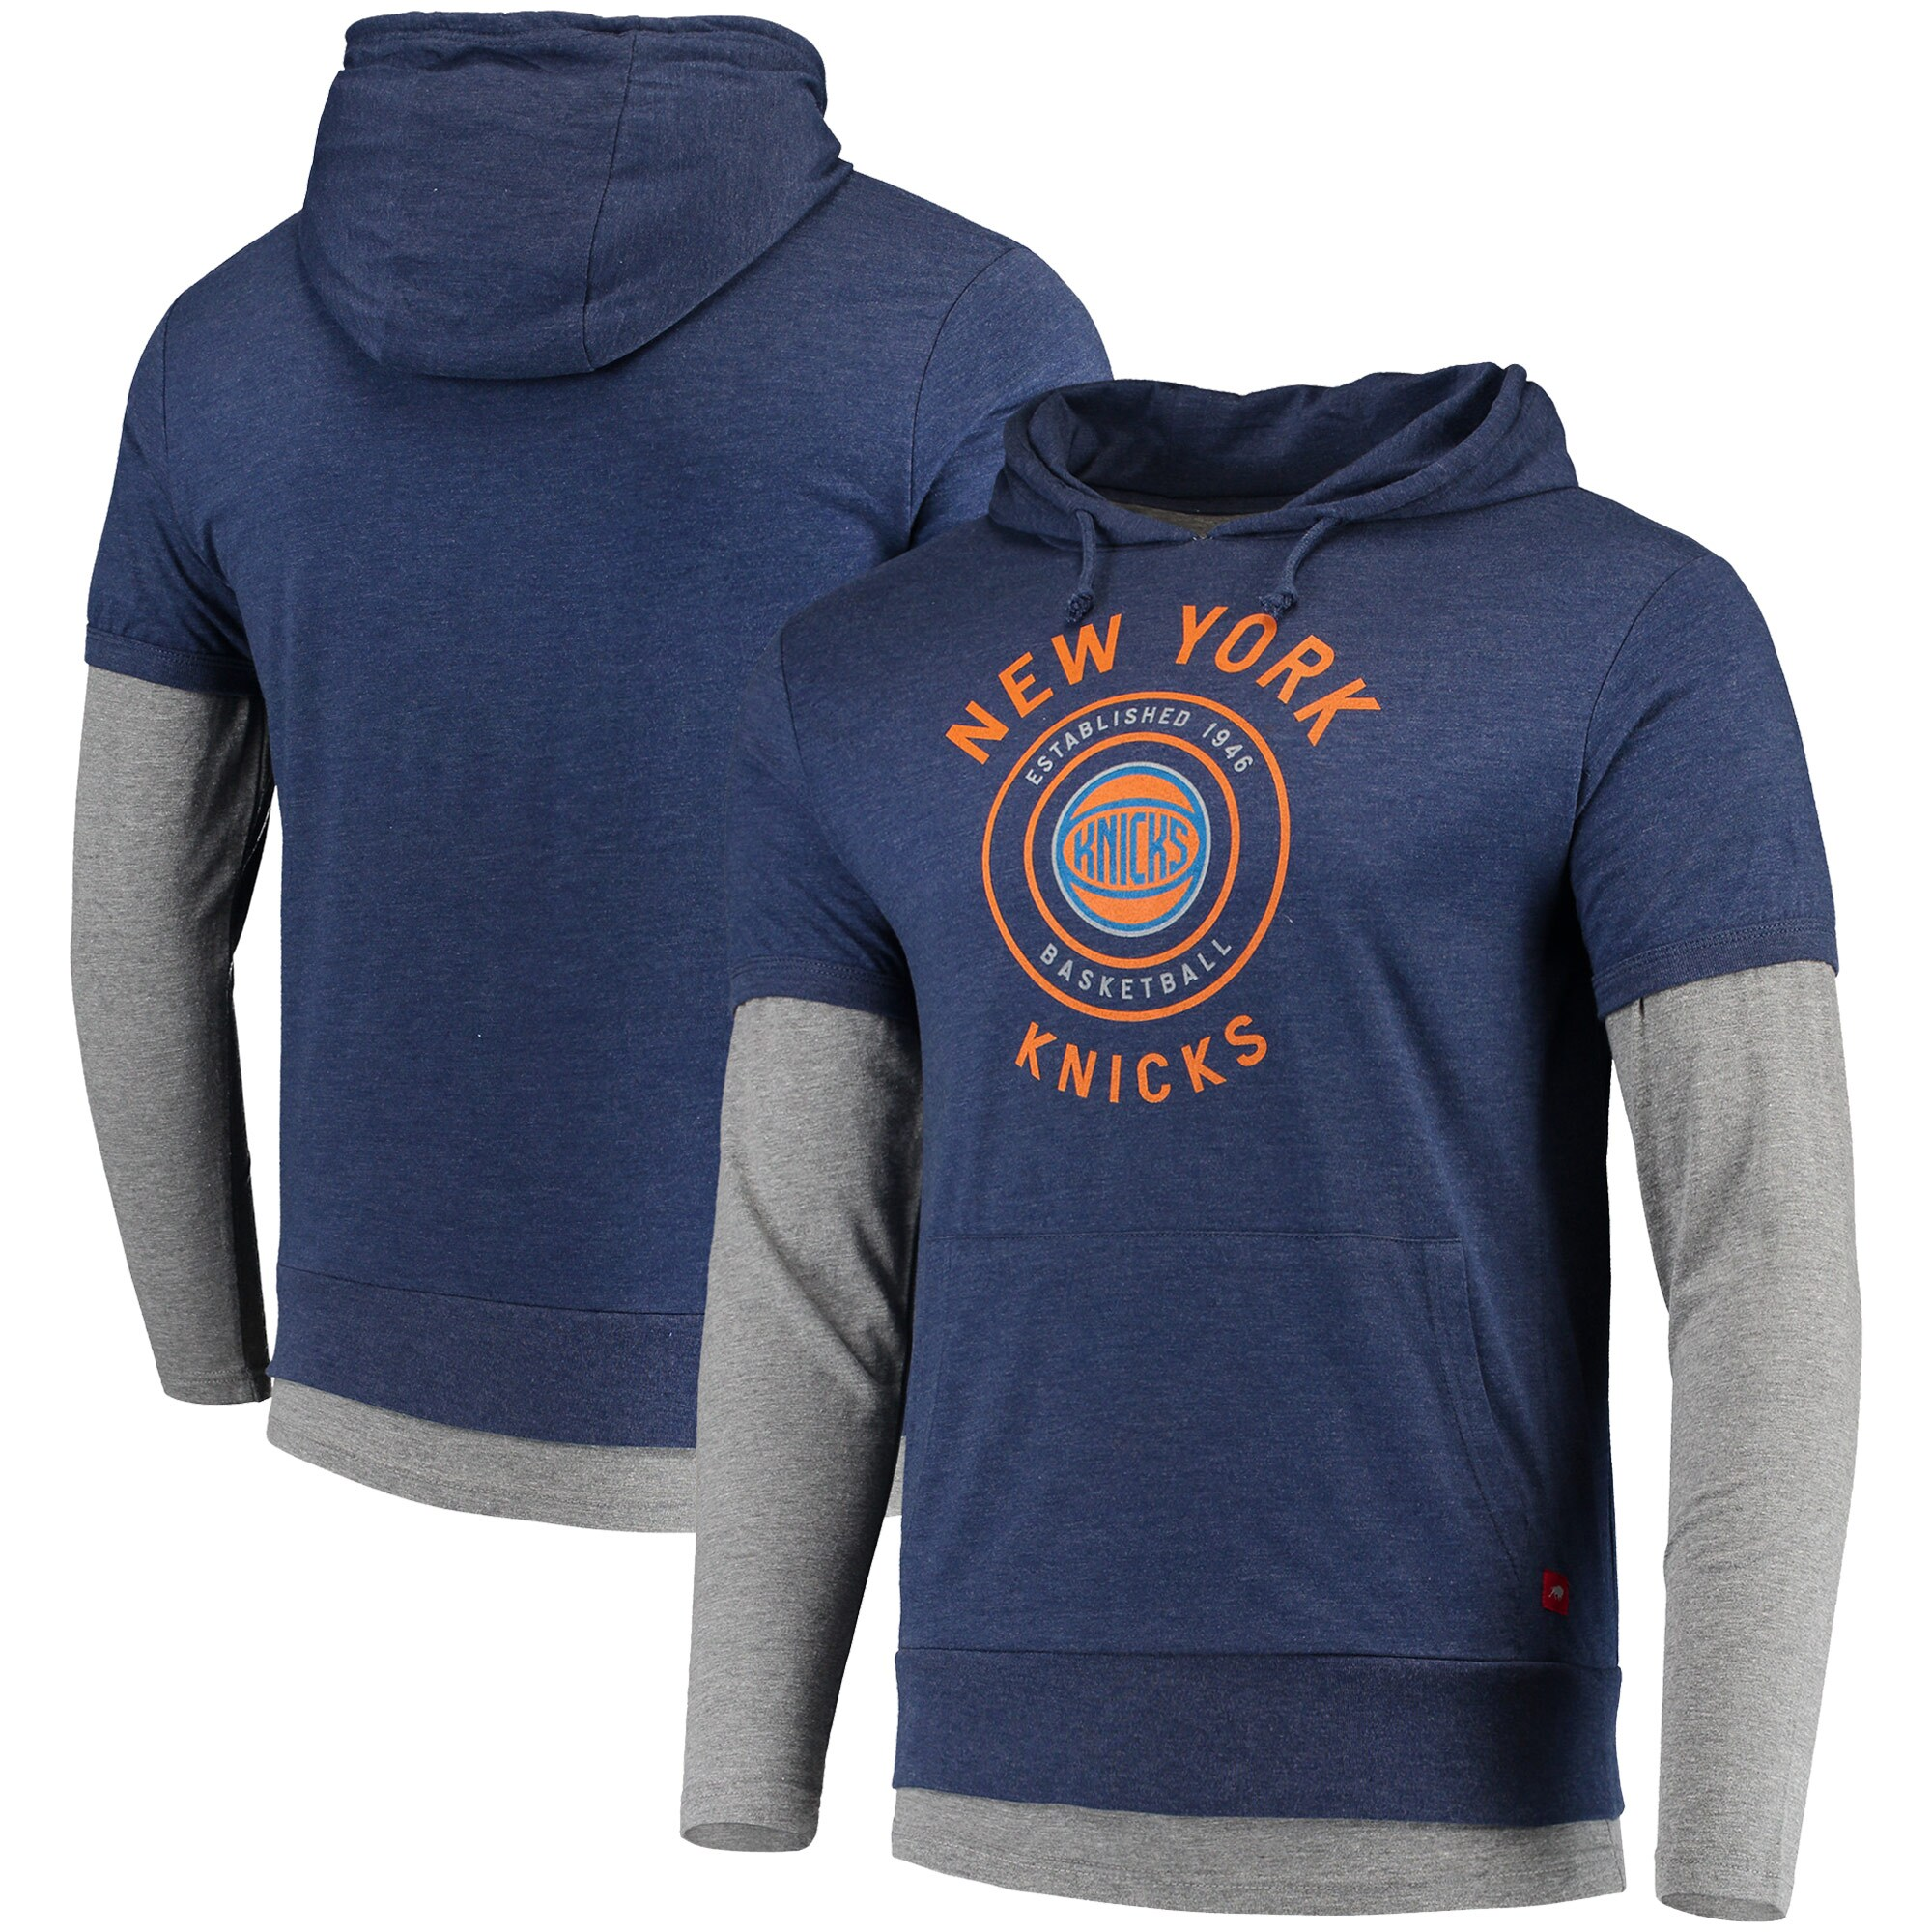 New York Knicks Sportiqe Miller Two-Tone Tri-Blend Pullover Hoodie - Navy